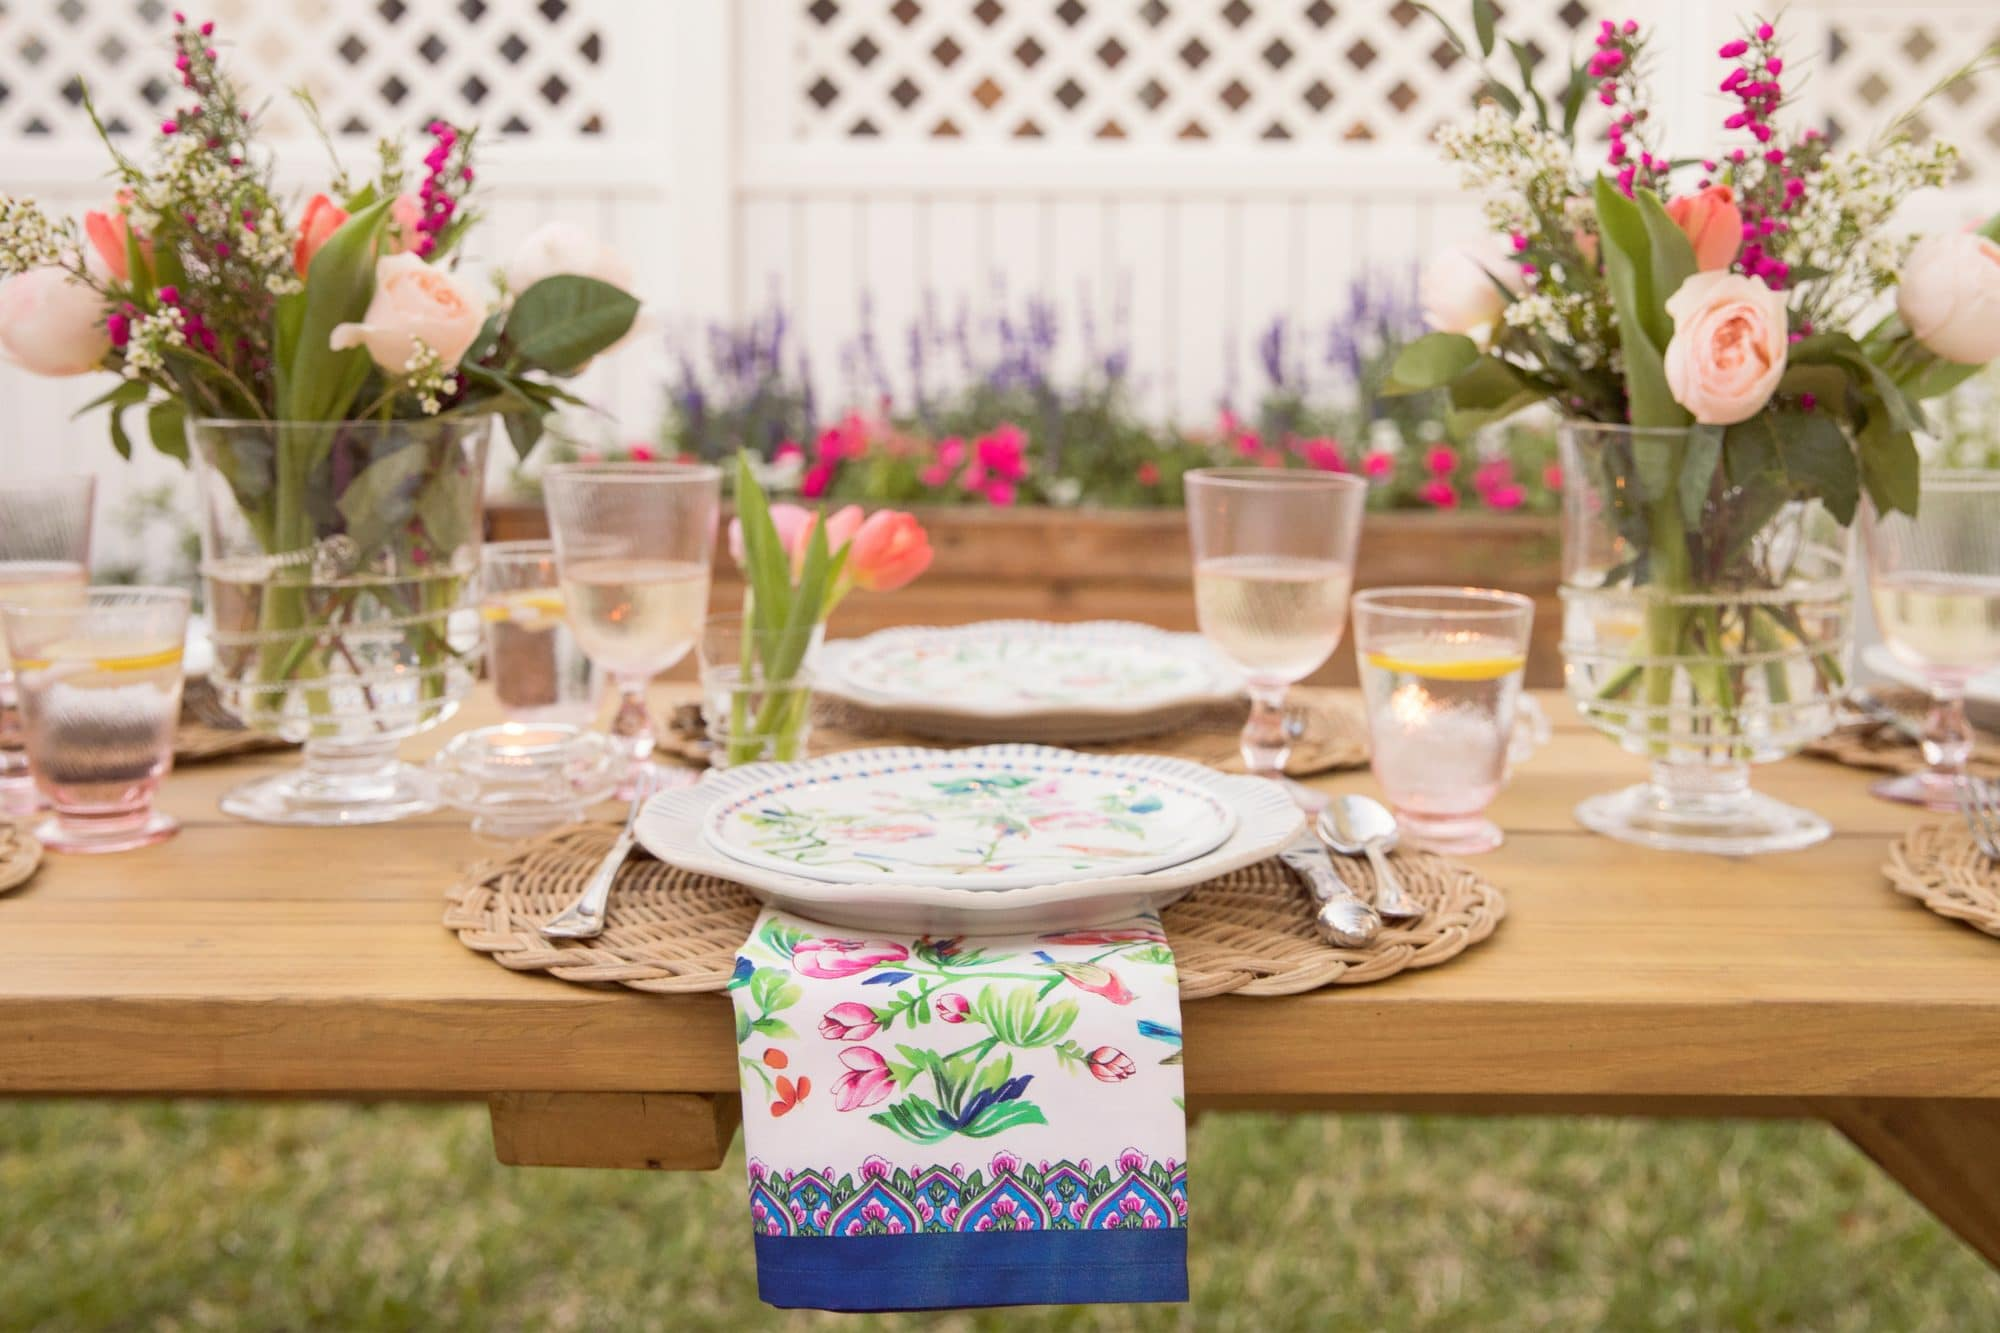 Three Steps to a Stunning Spring Table - Ashley Brooke | www.ashleybrookedesigns.com